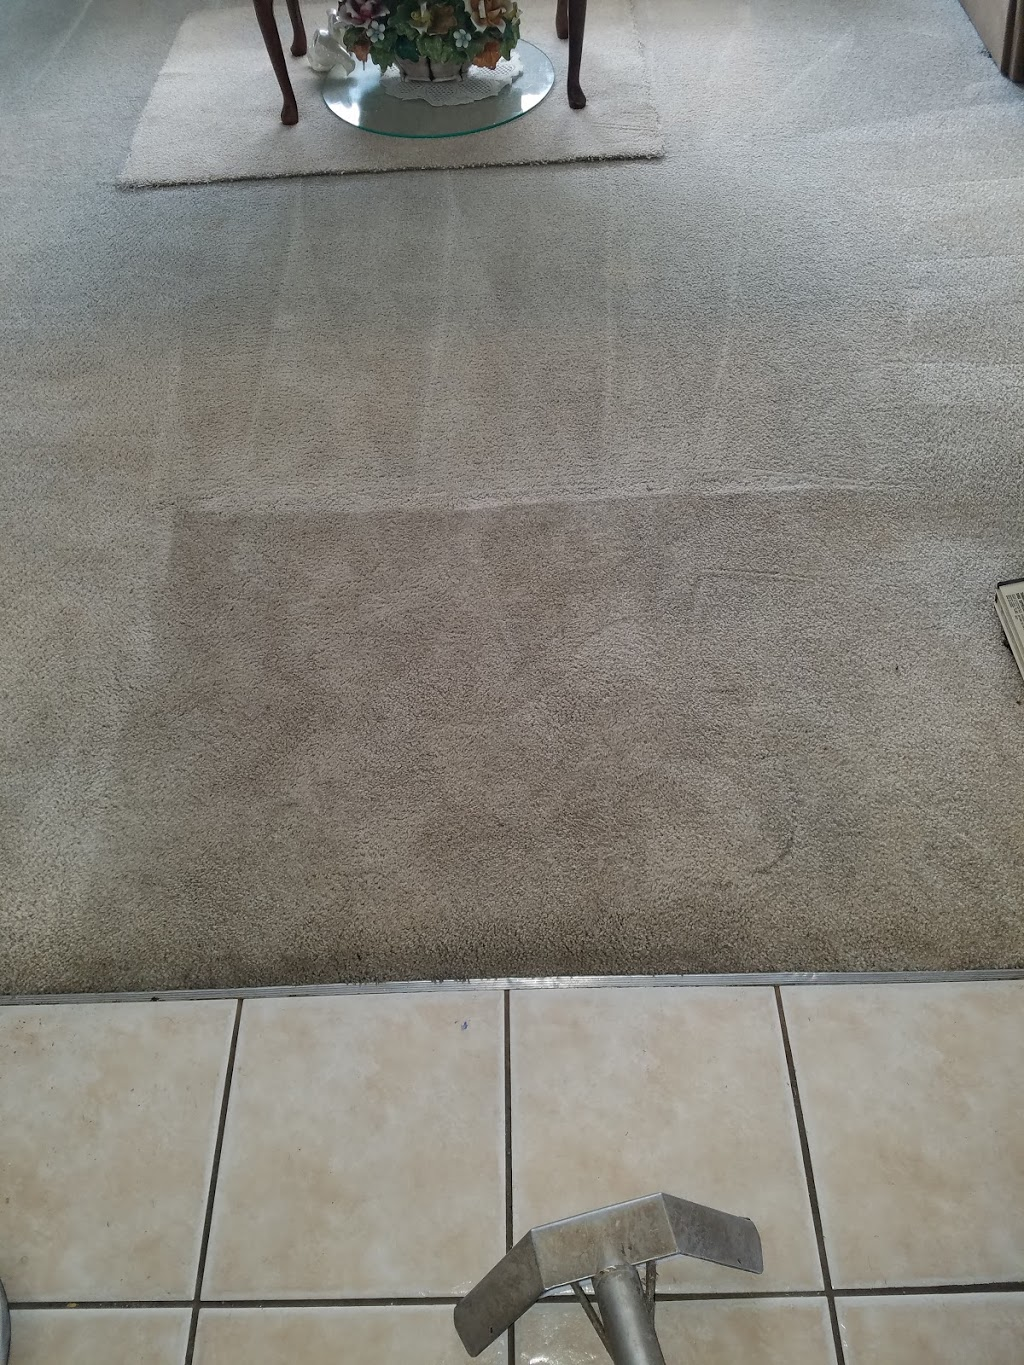 J.R.S CARPET CLEANING - laundry  | Photo 6 of 10 | Address: Navajo St, Huachuca City, AZ 85616, USA | Phone: (520) 559-1429